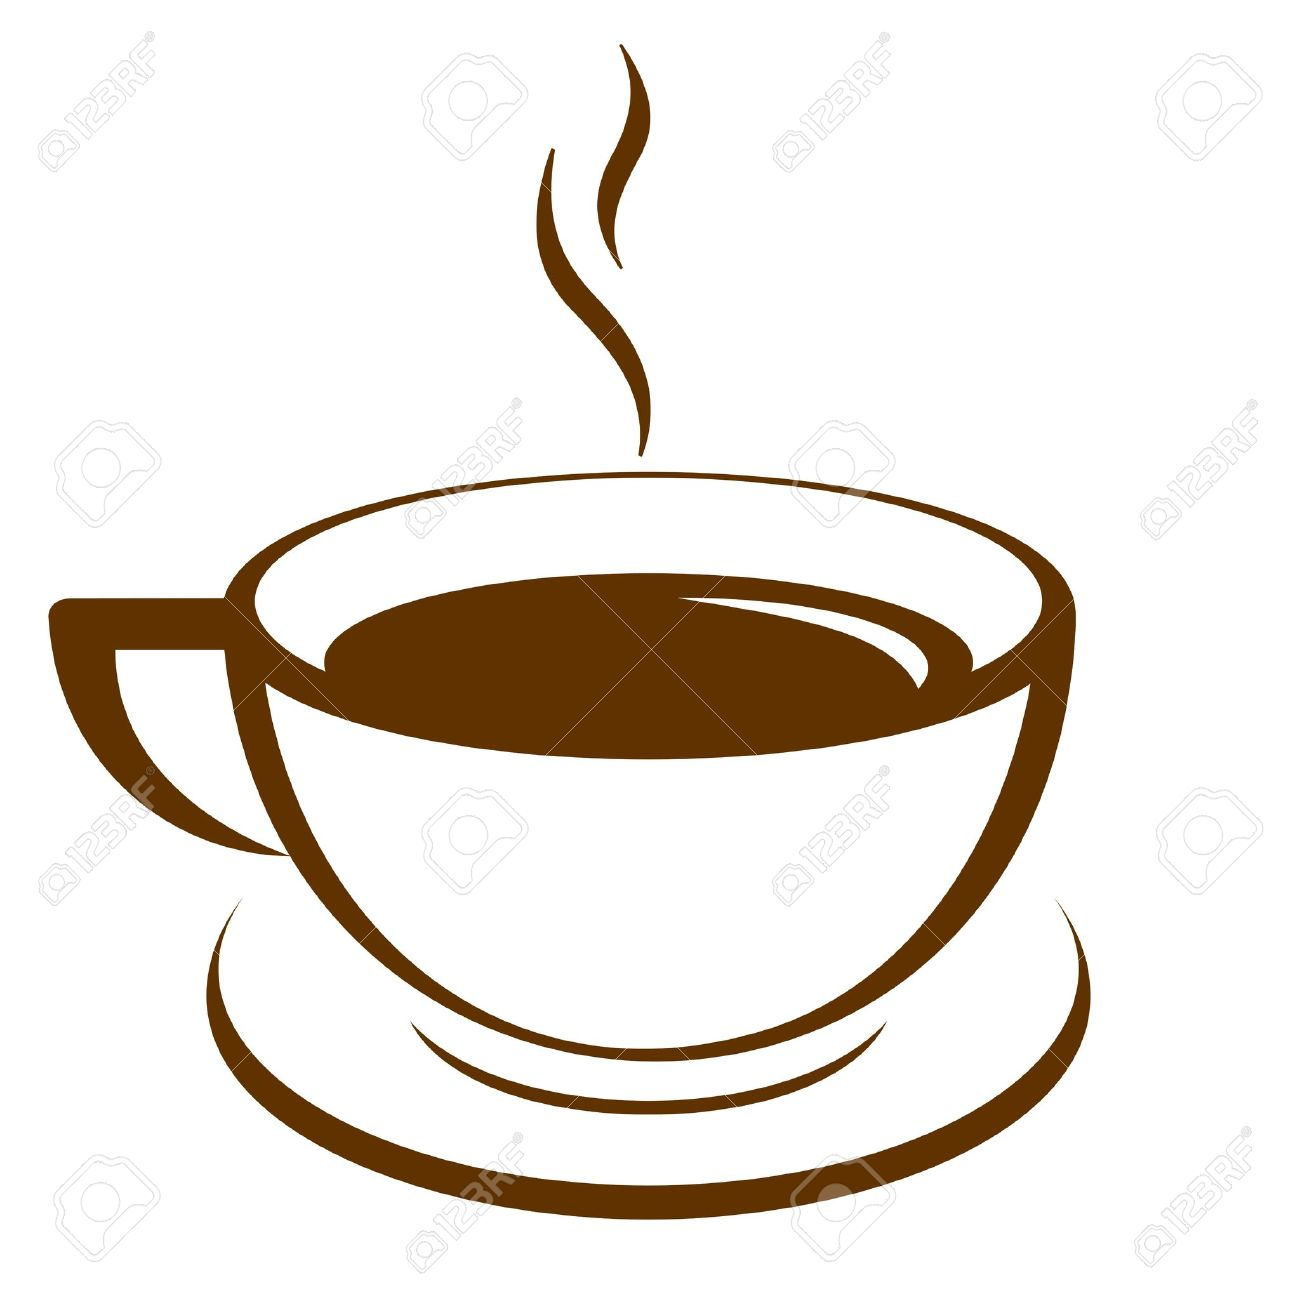 coffee steam outline clipart - Clipground